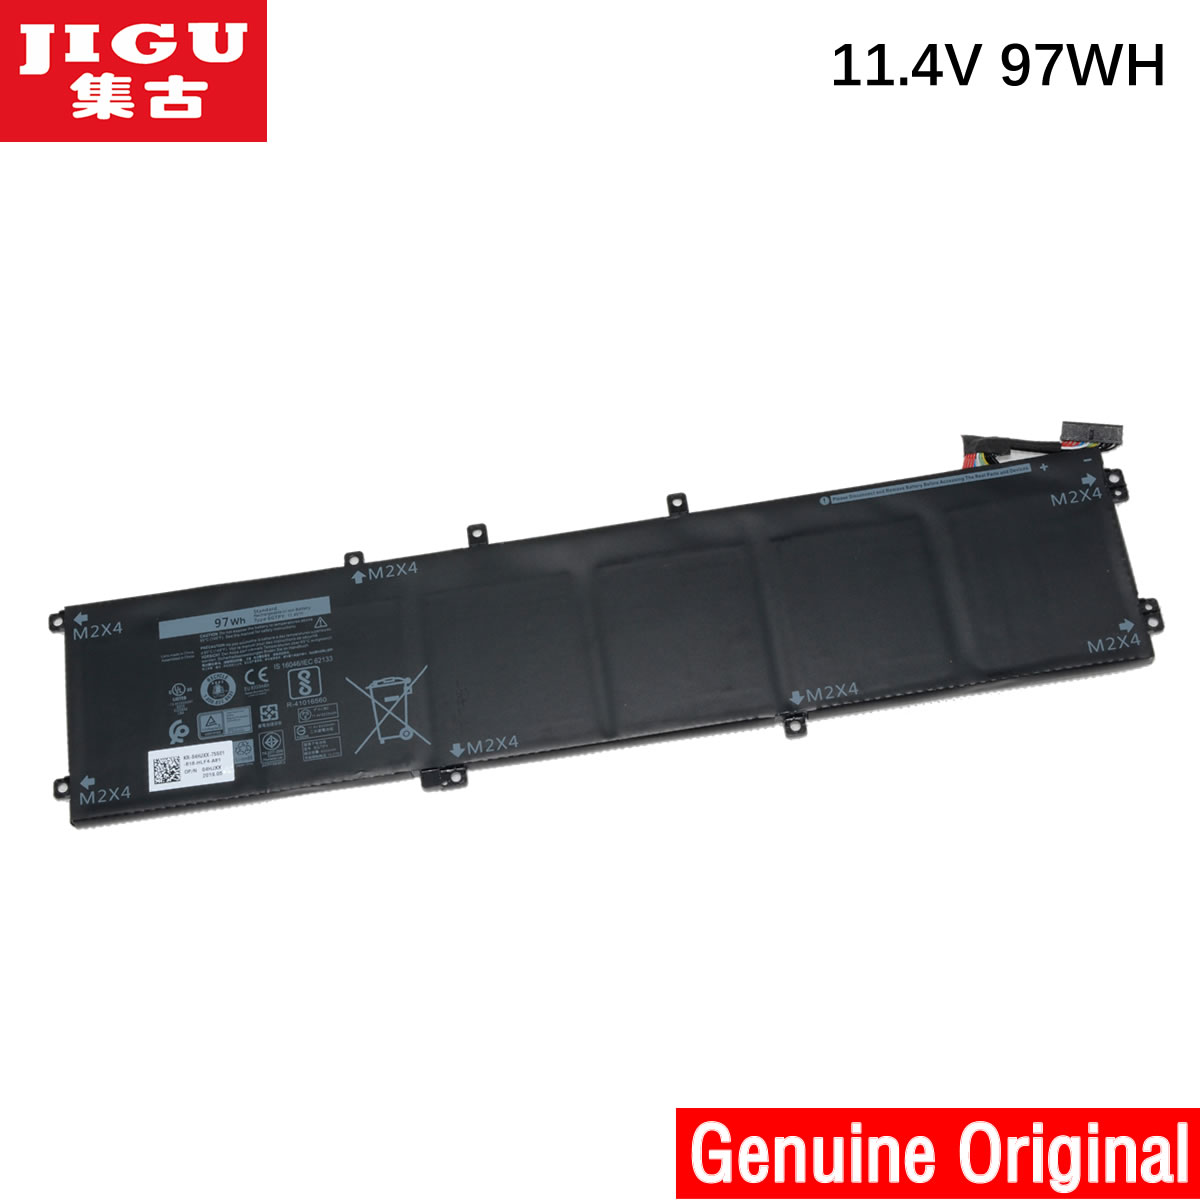 JIGU 11.1V 97WH Original 6GTPY 5XJ28 Laptop Battery For Dell Precision 5510 XPS 15 9550 9560 6GTPY 5XJ28 Laptop Tablet BATTERY image